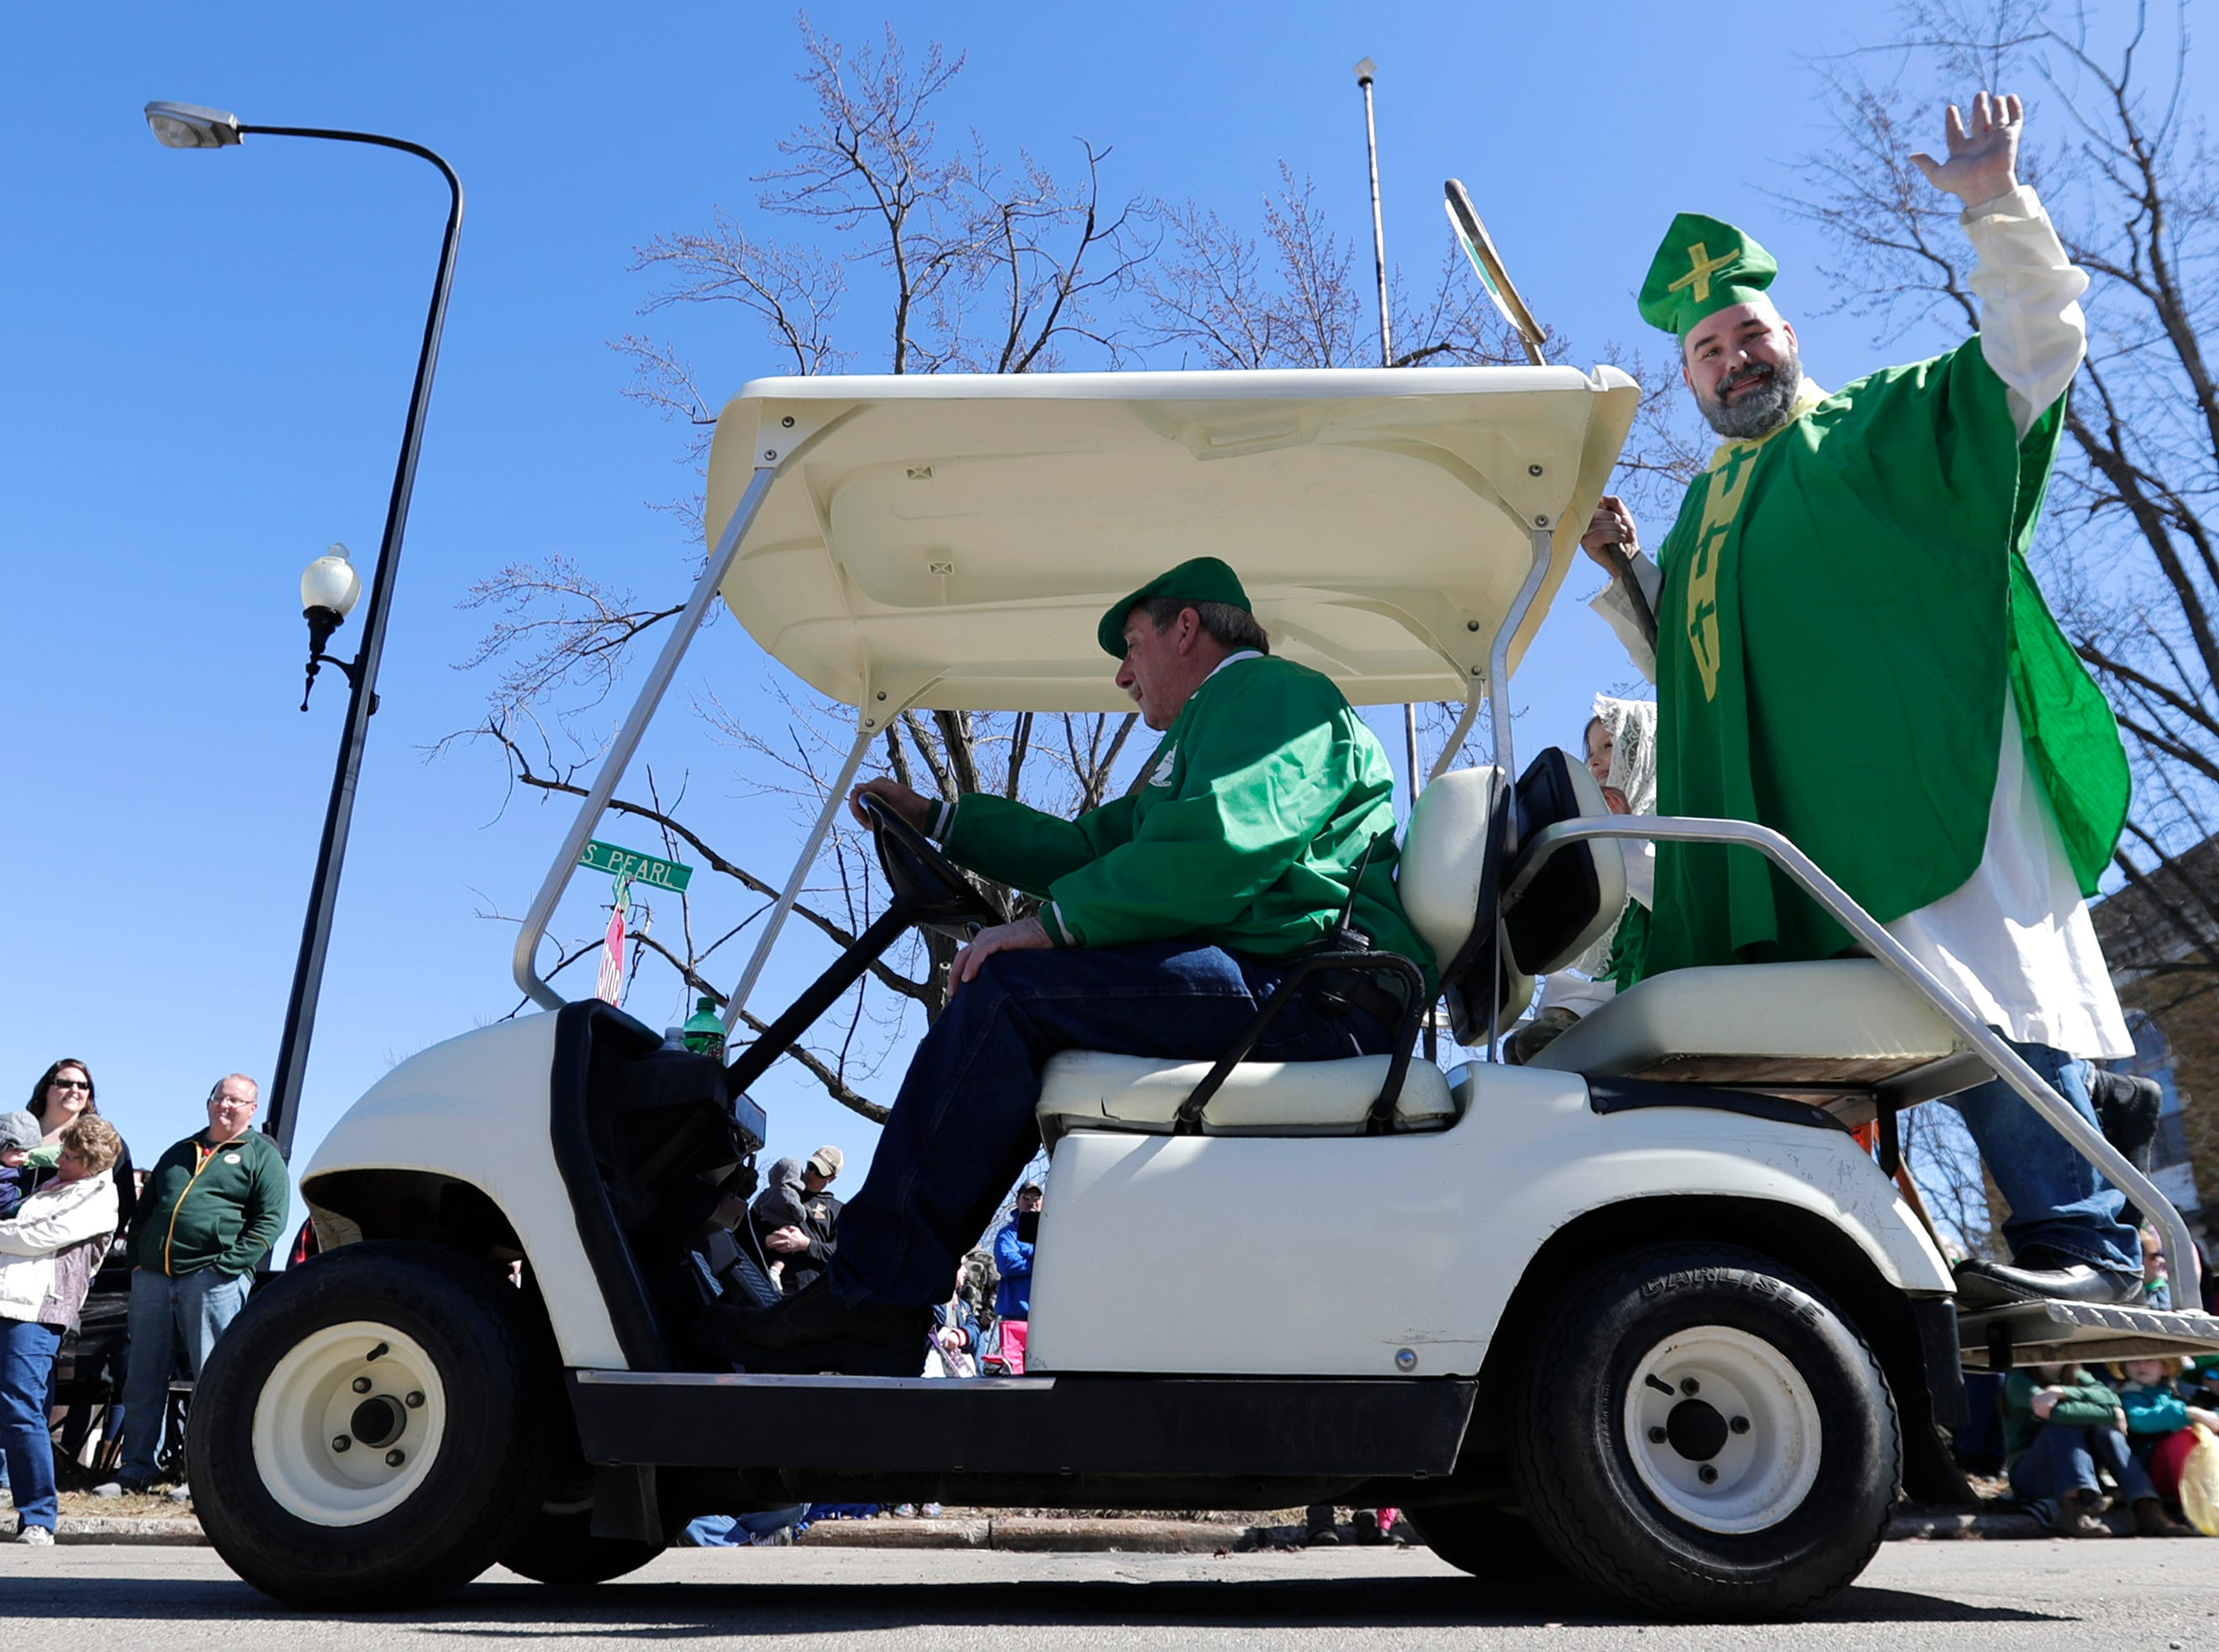 The New Dublin St. Patrick's Day Grand Parade on Saturday, March 23, 2019, in New London, Wis.Wm. Glasheen/USA TODAY NETWORK-Wisconsin.